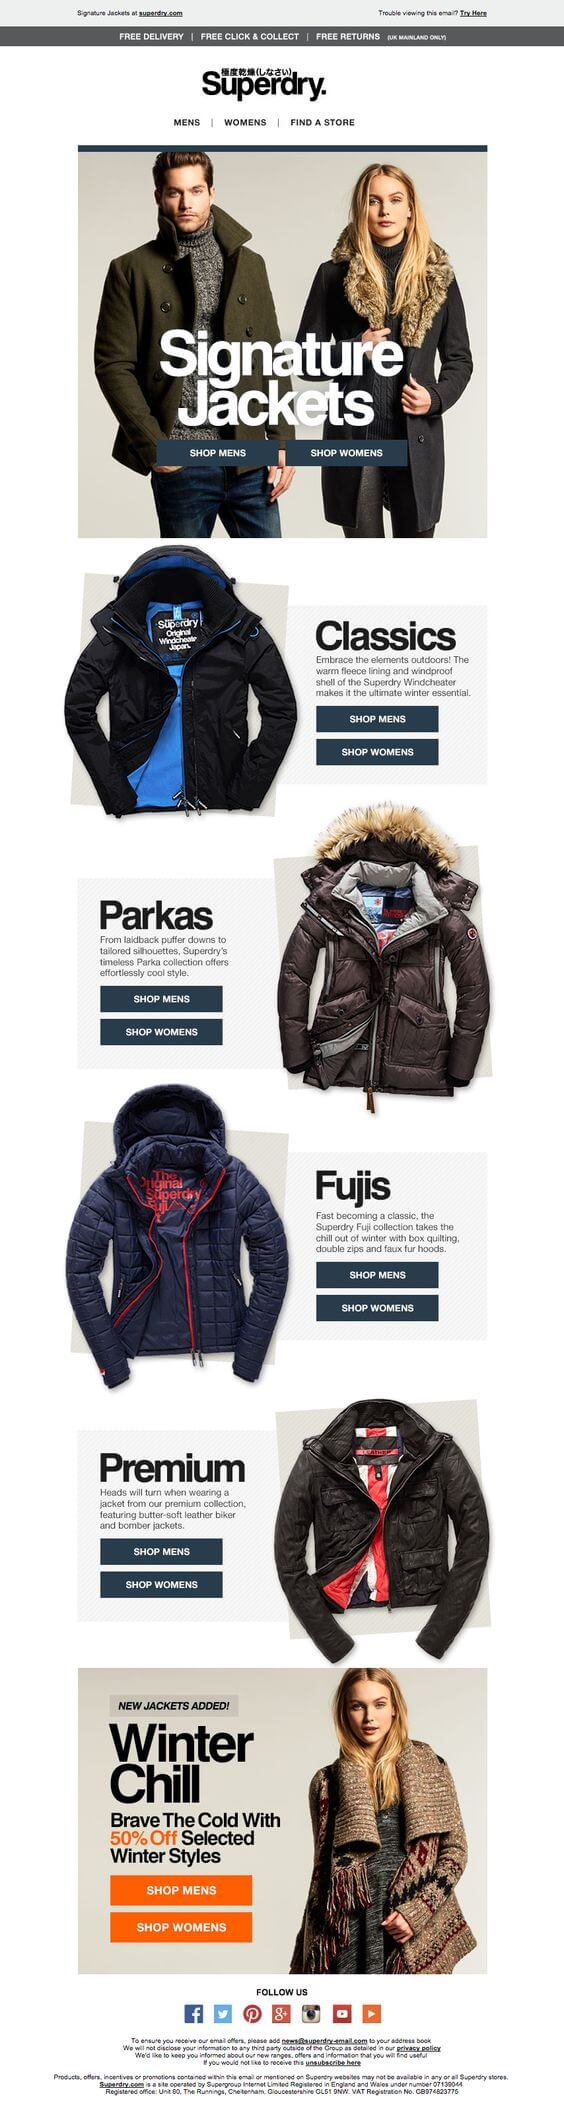 Email Personalization Examples- Superdry Birthday Email